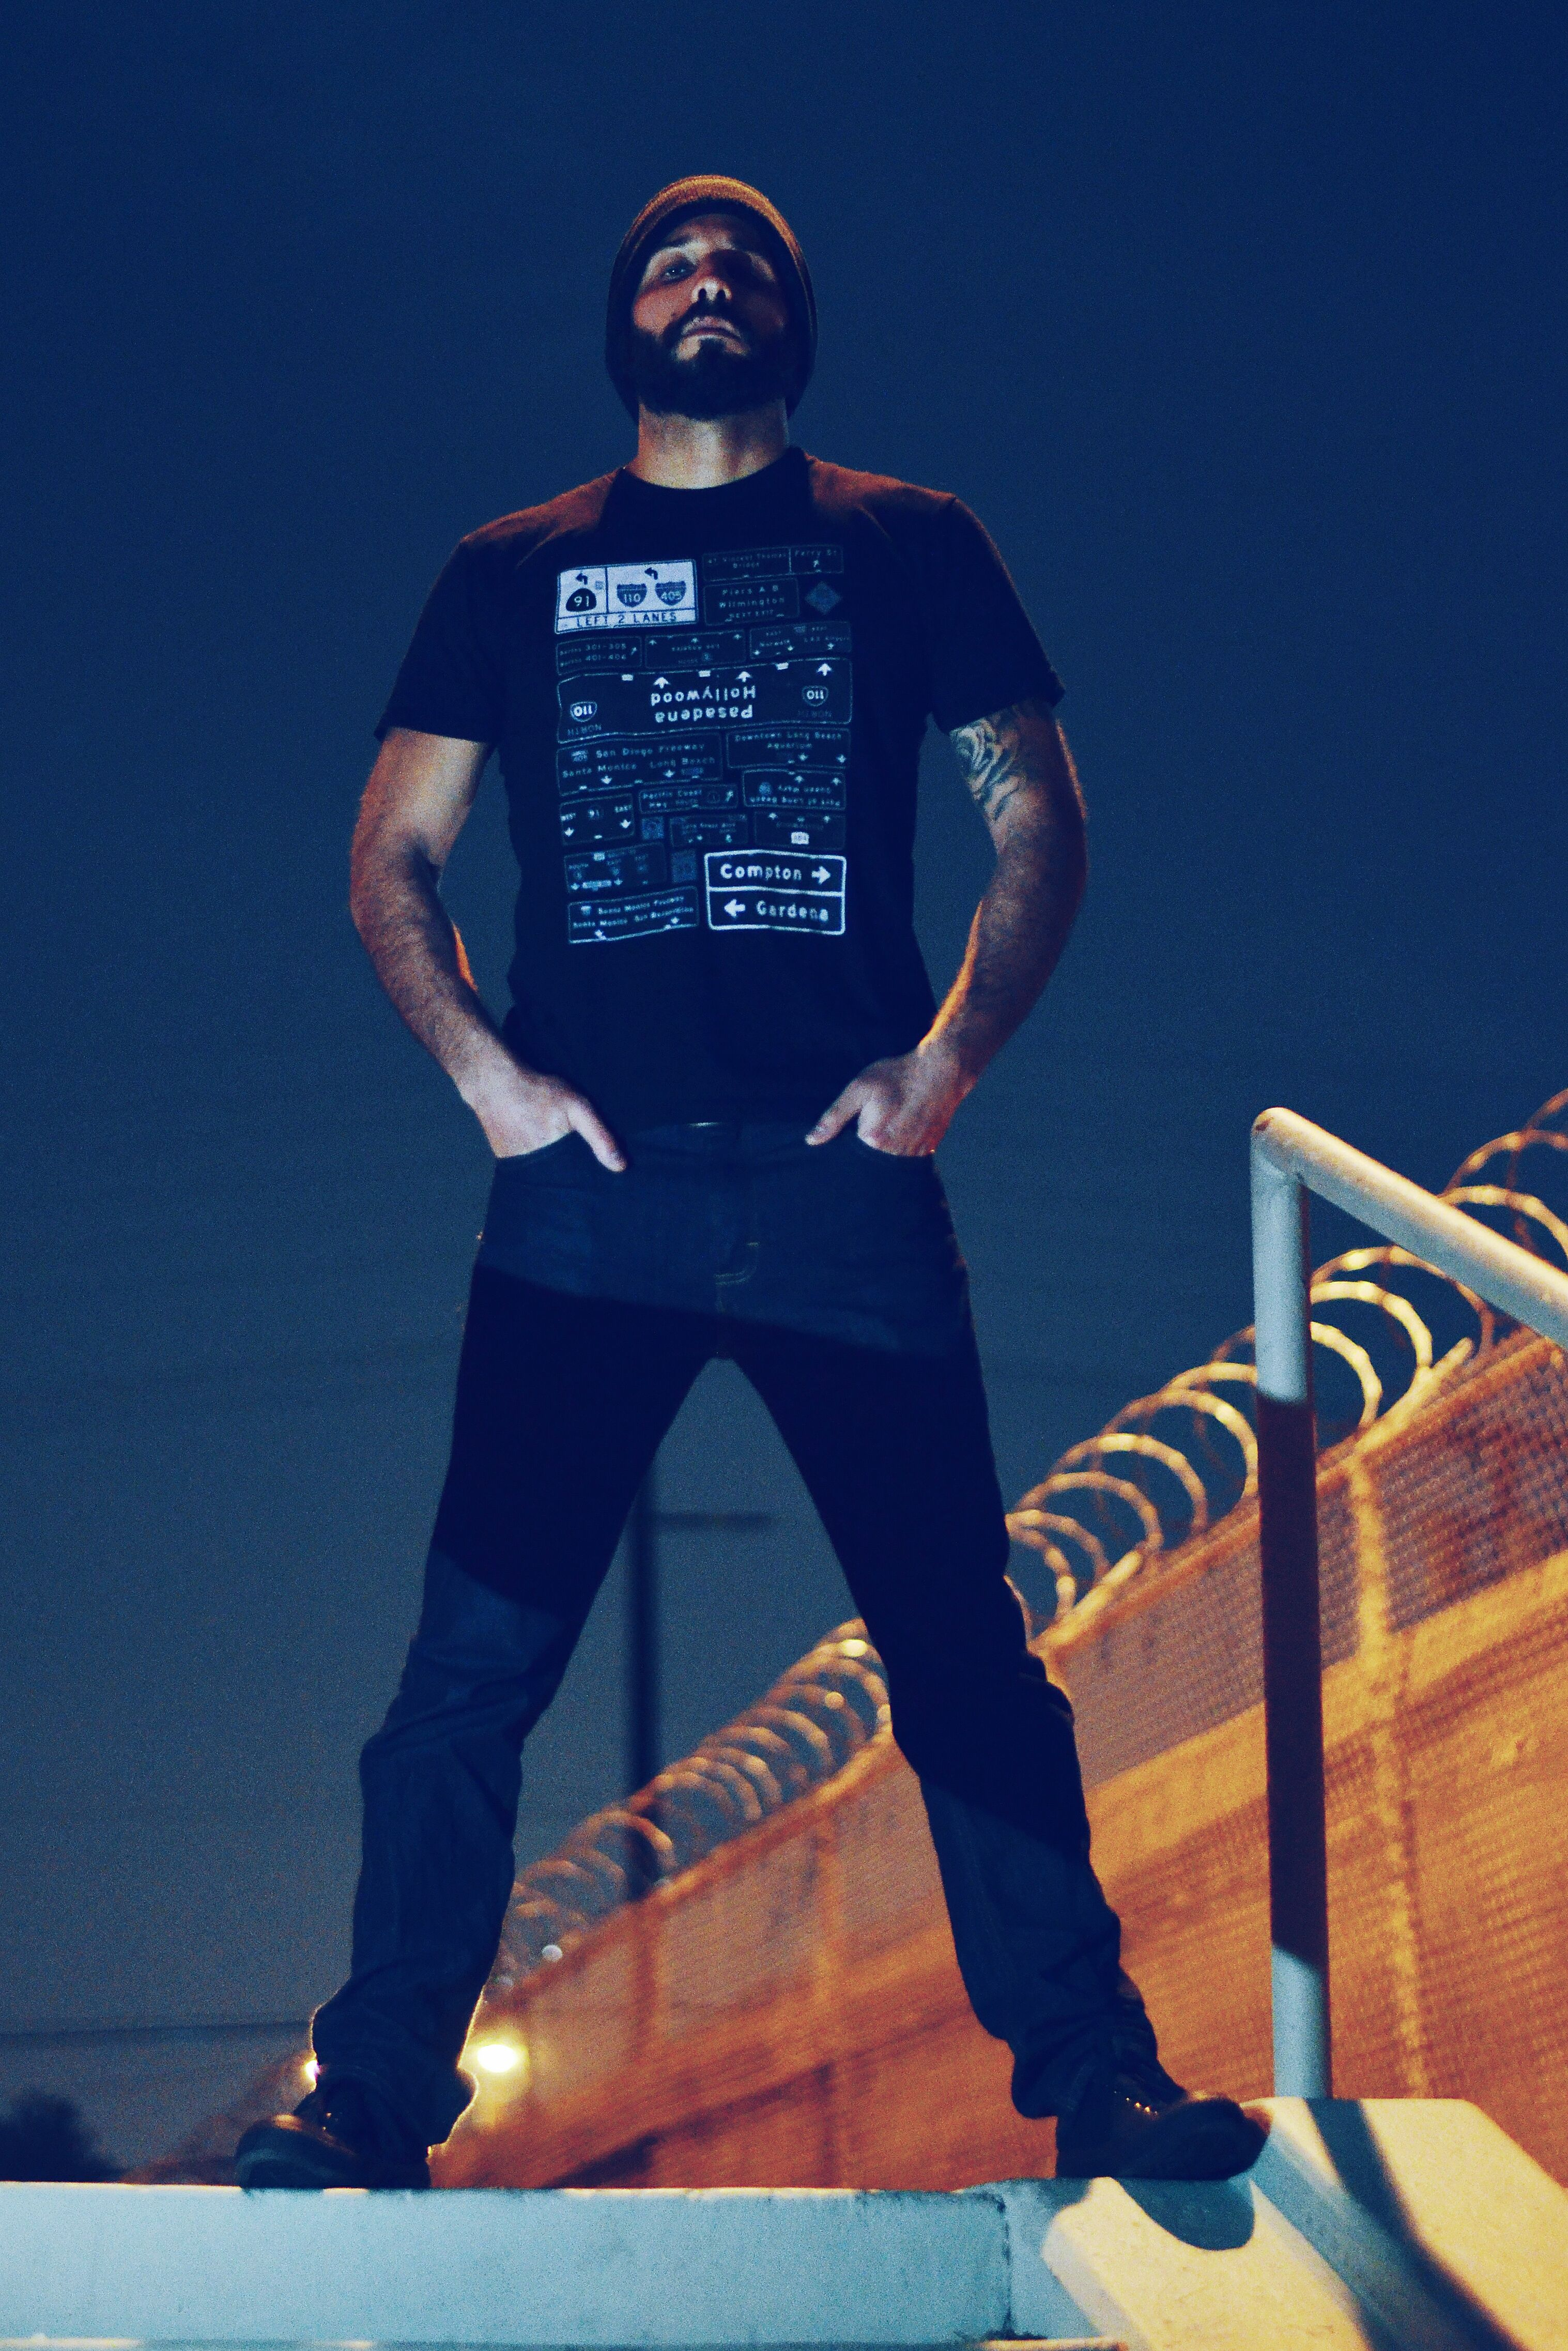 Design t shirts los angeles - Wearebutthreads Com Tshirts Apparel Design Losangeles Onelove Photo By Joshua